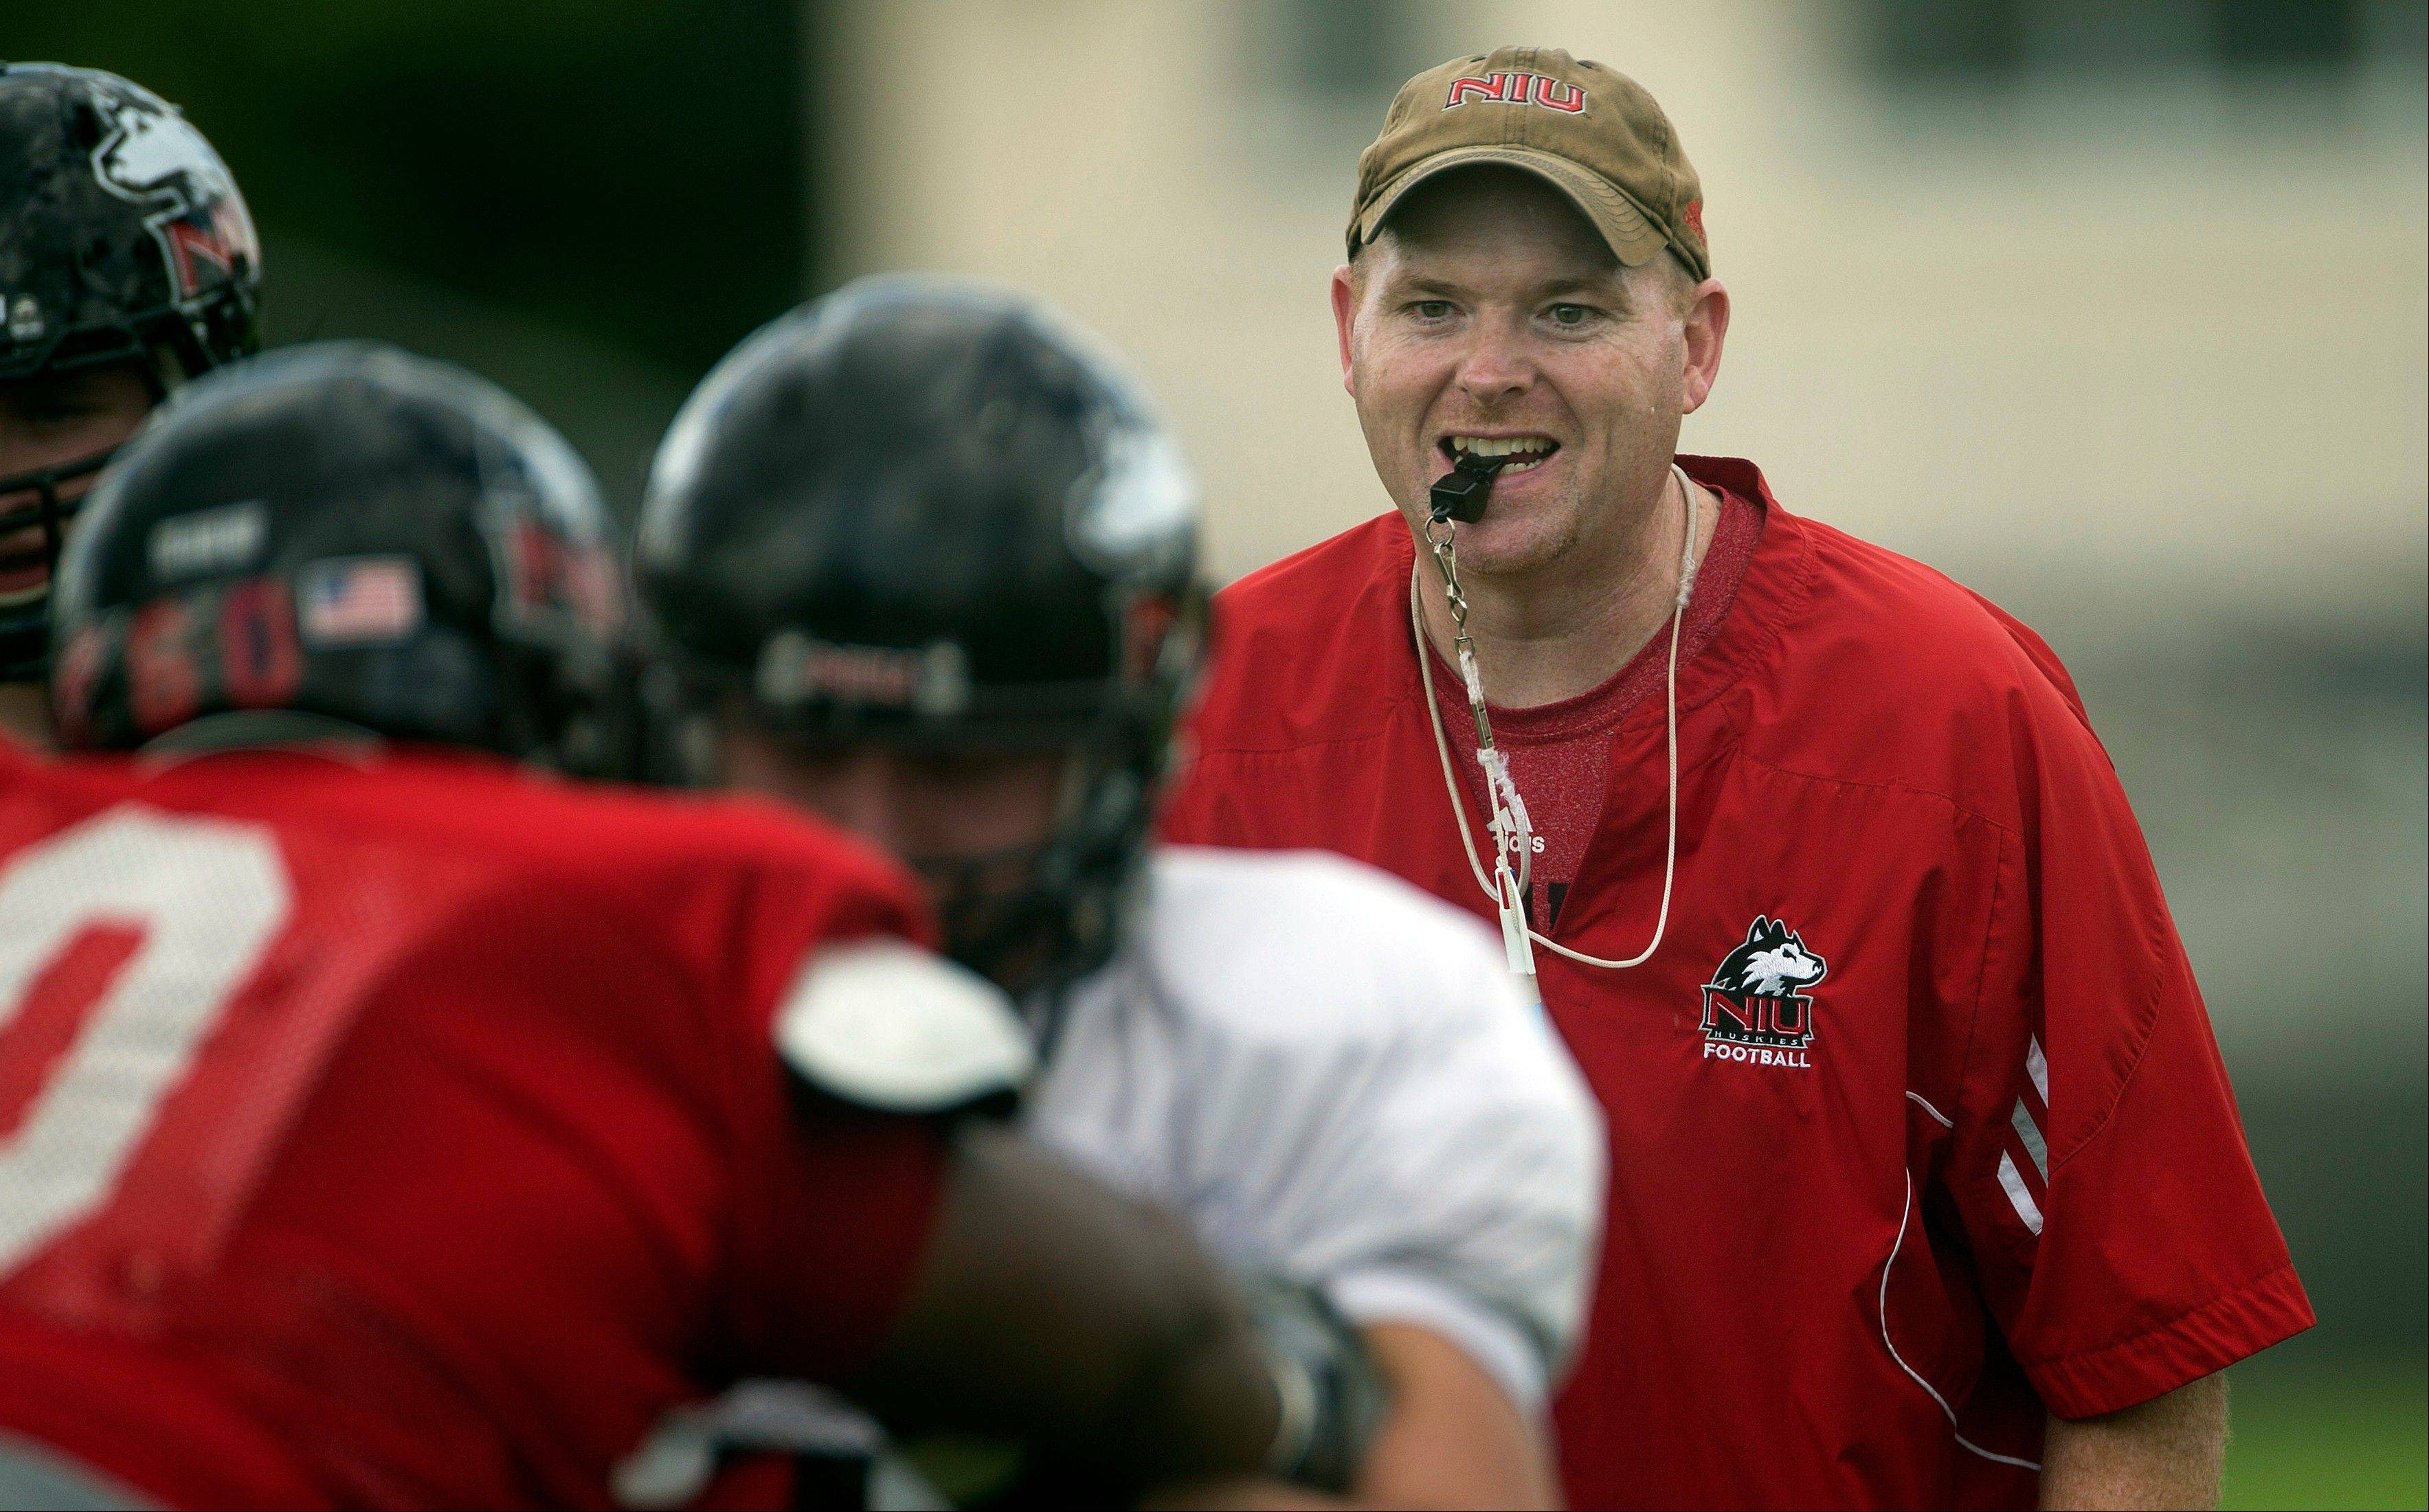 Northern Illinois coach Rod Carey announced Wednesday that his 2014 recruiting class includes 31 players from 11 states.